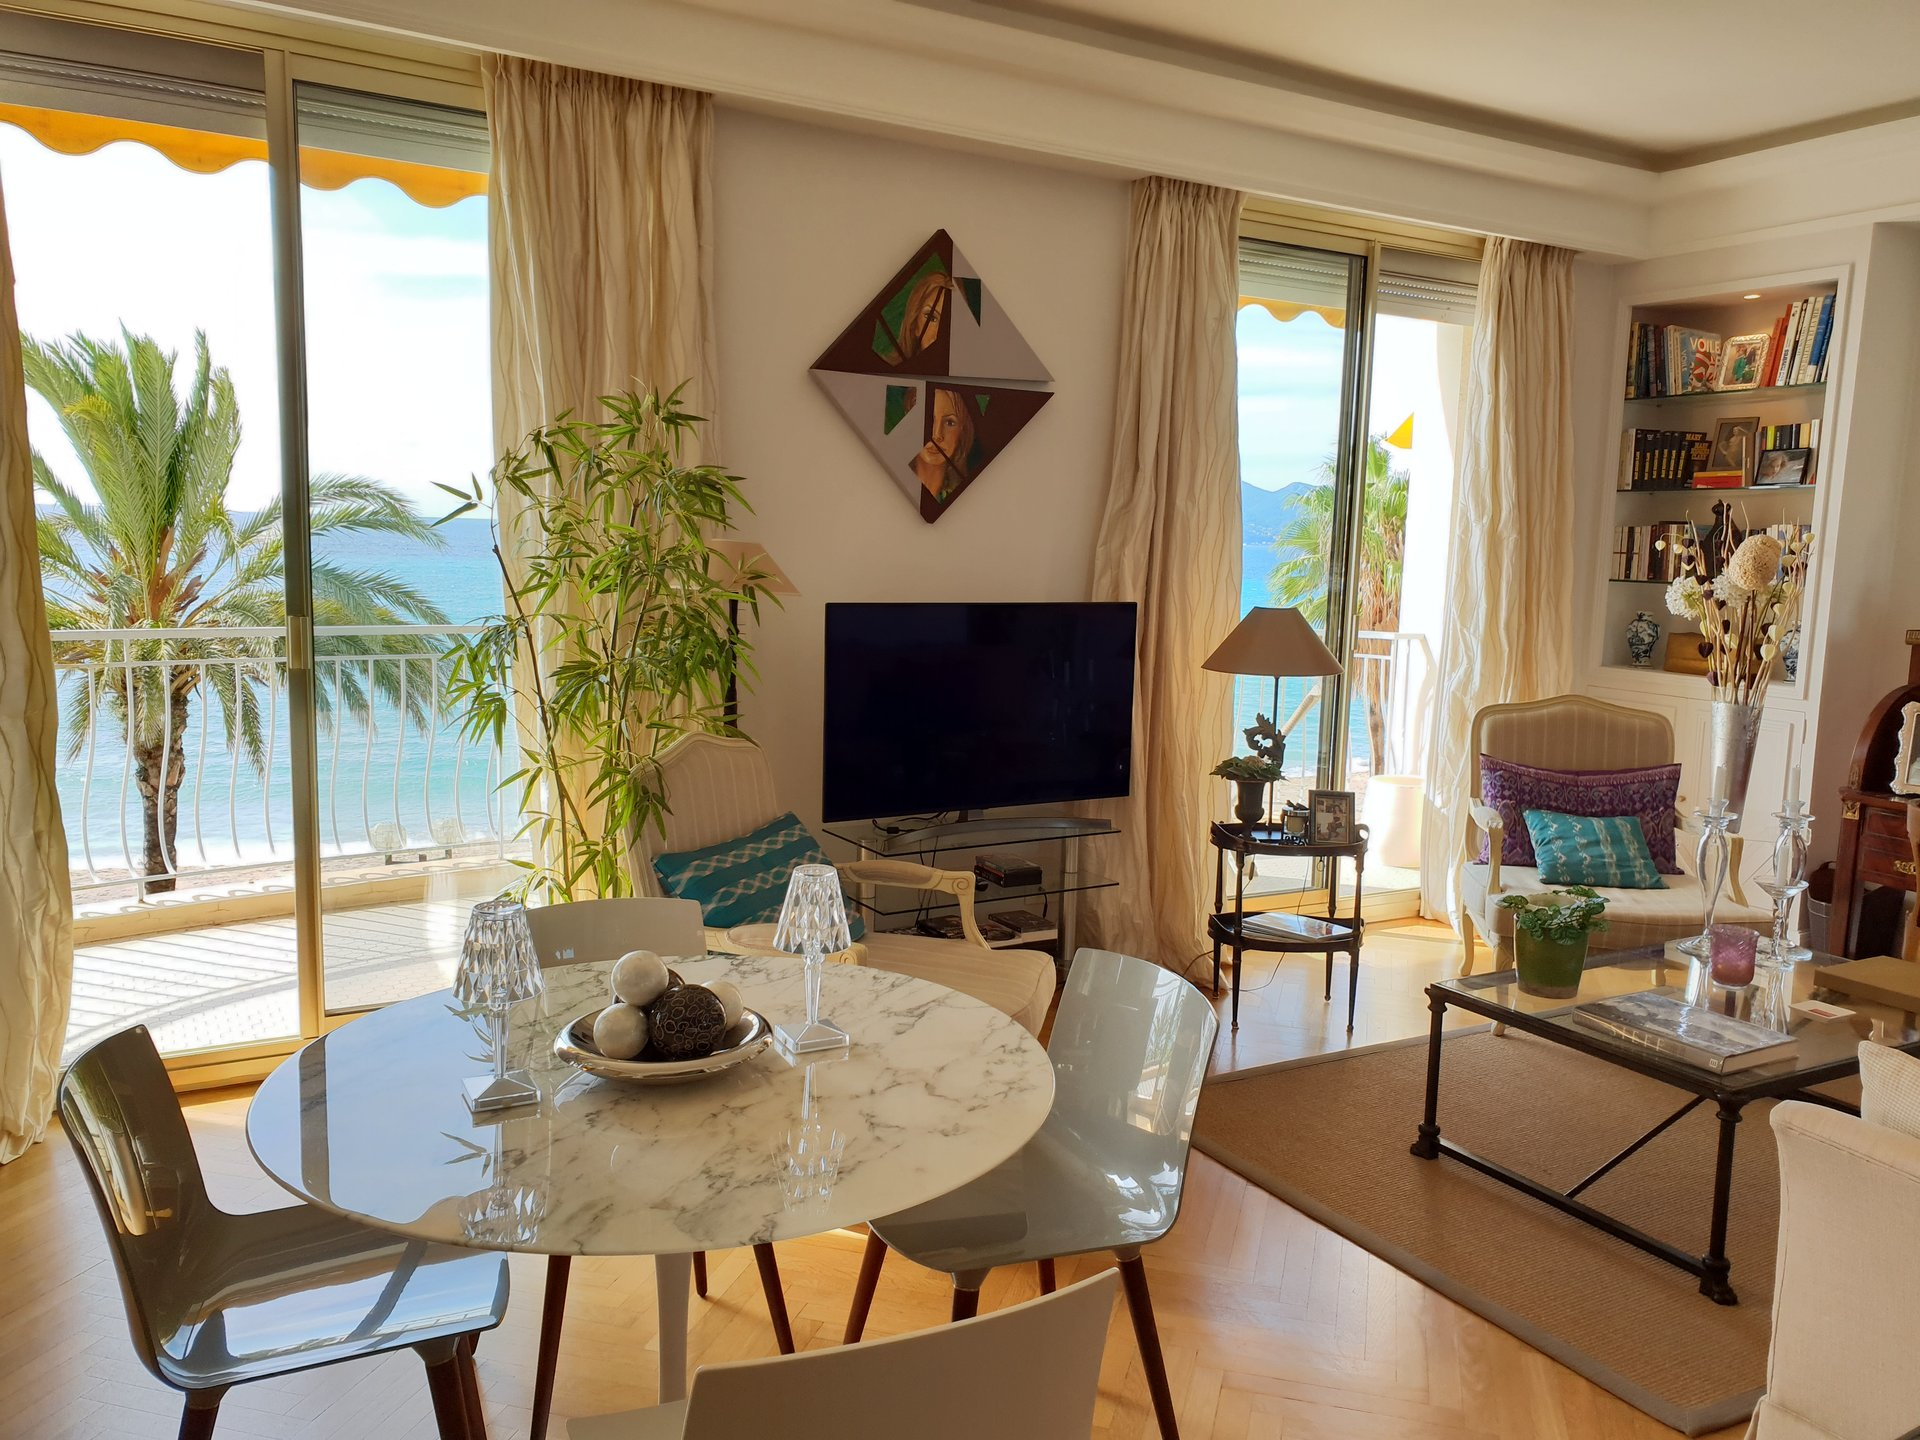 Apartment 3 bedroom center of Cannes sea view.